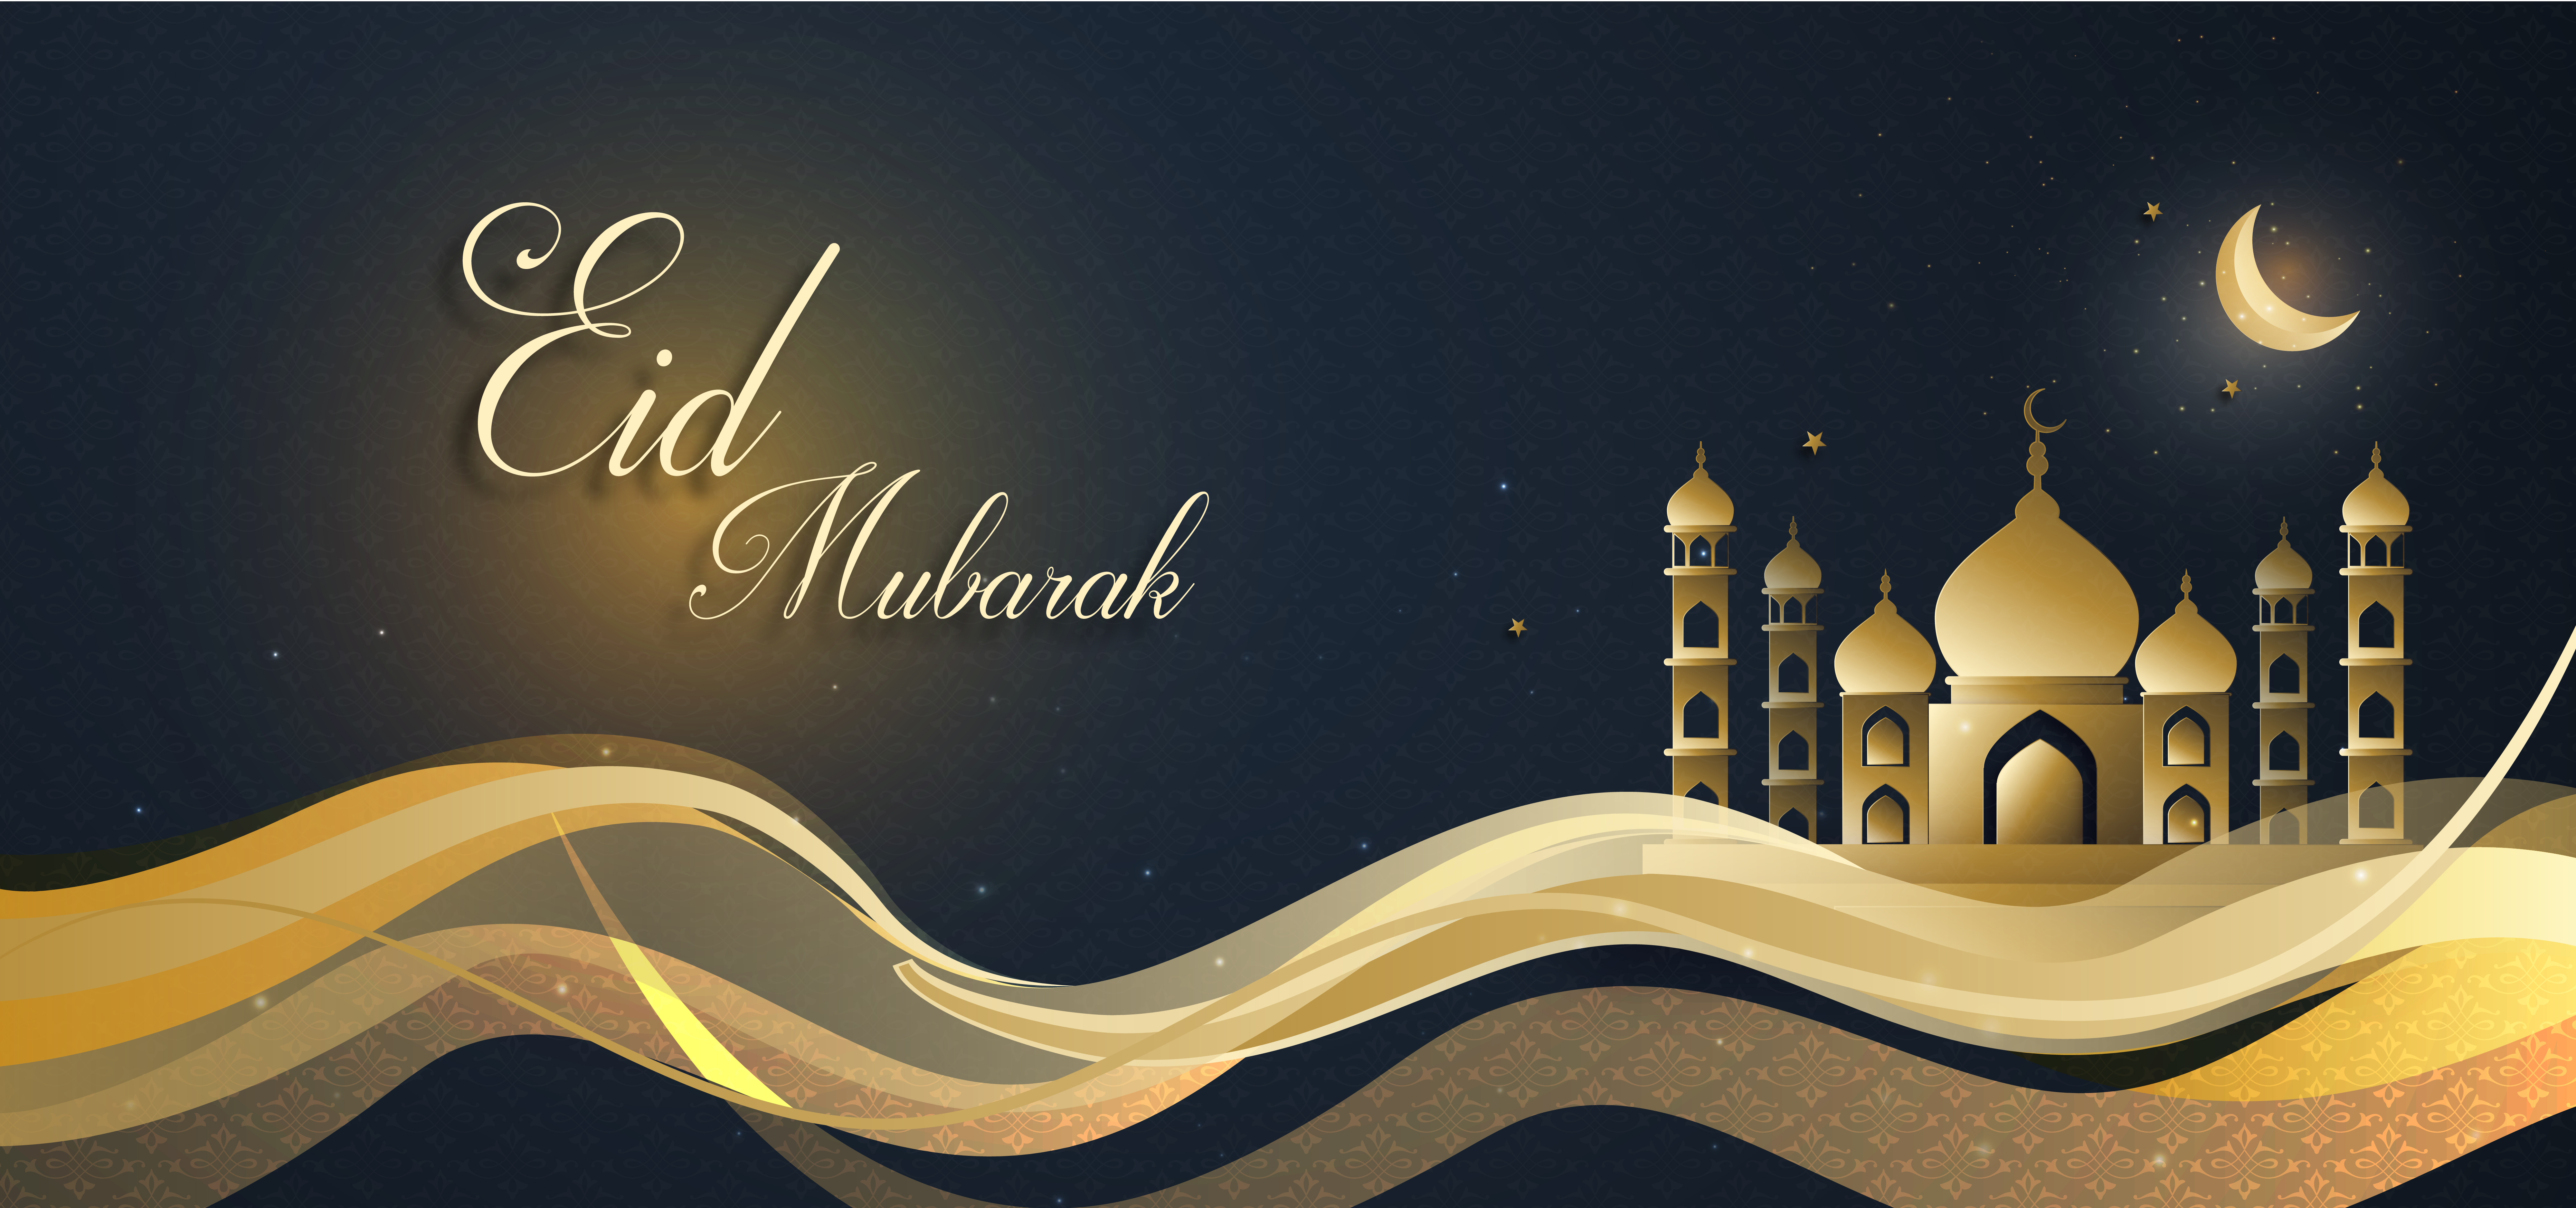 eid mubarak royal luxury banner background download free vectors clipart graphics vector art vecteezy